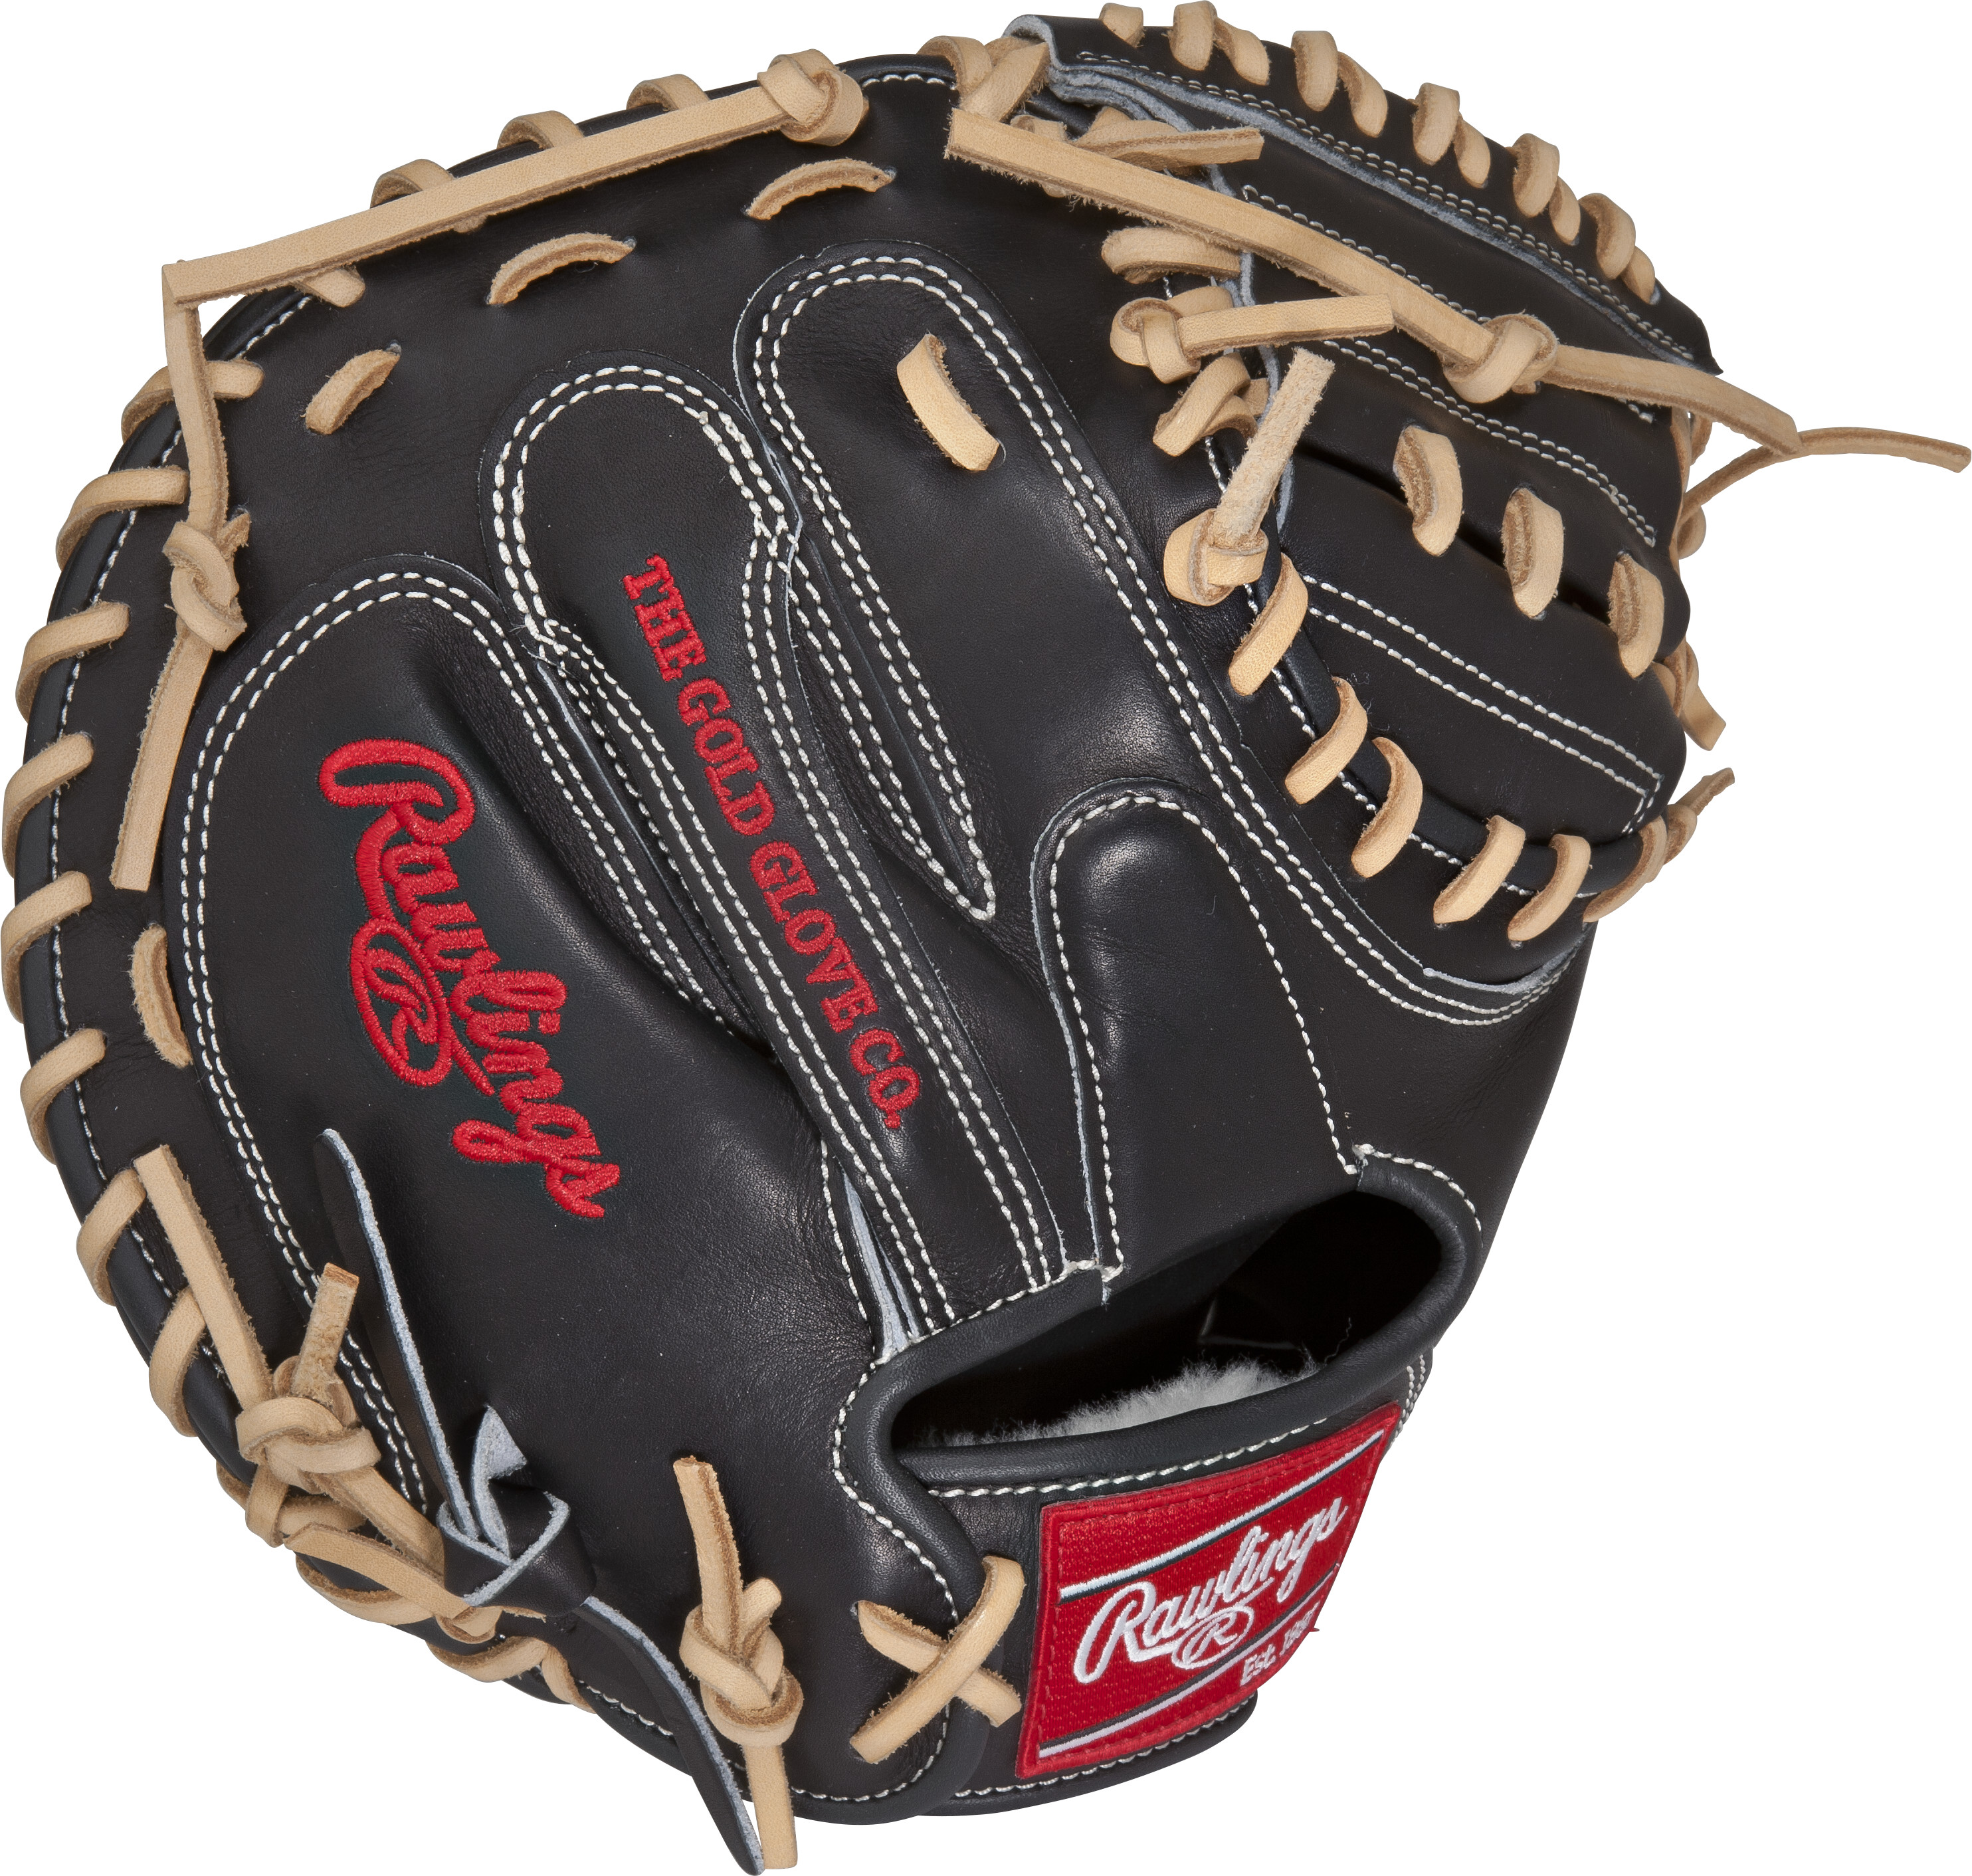 http://www.bestbatdeals.com/images/gloves/rawlings/PROSCM33B_back.jpg